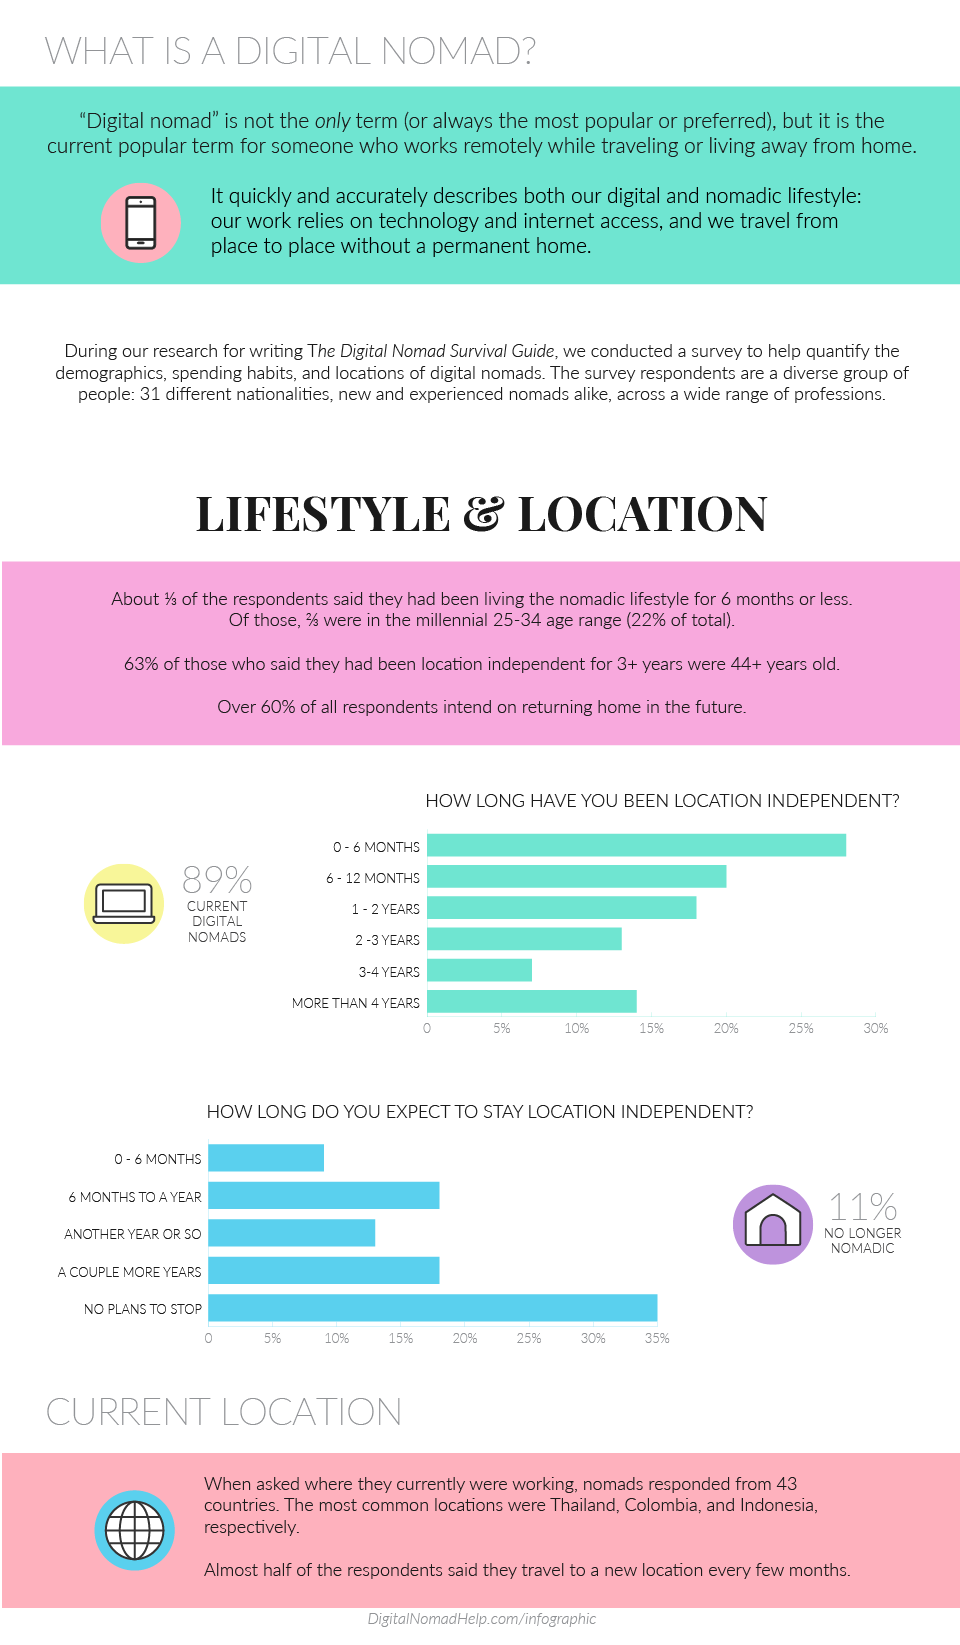 DN_Census_Infographic_indiv_Lifestyle copy.png